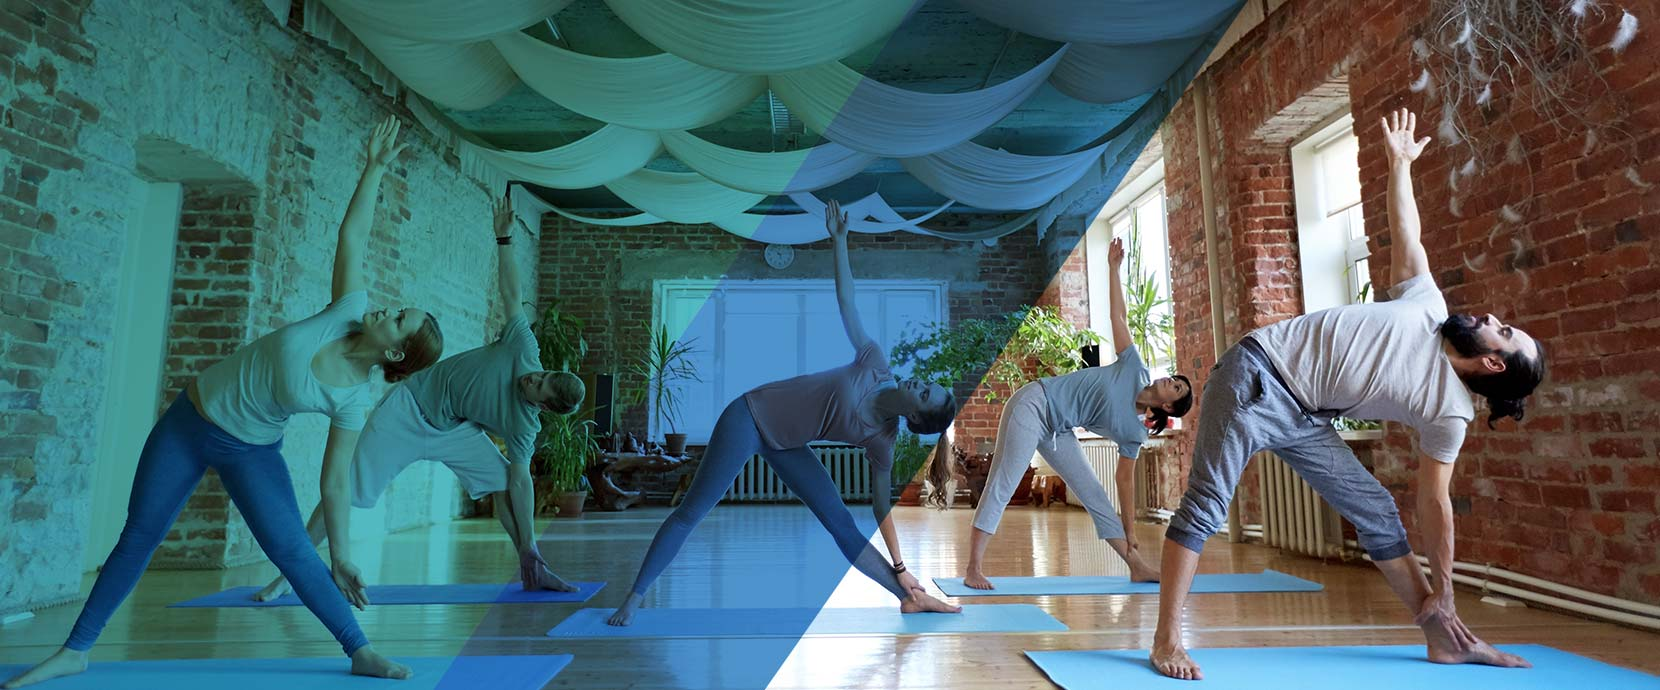 The complete solution for your yoga studio